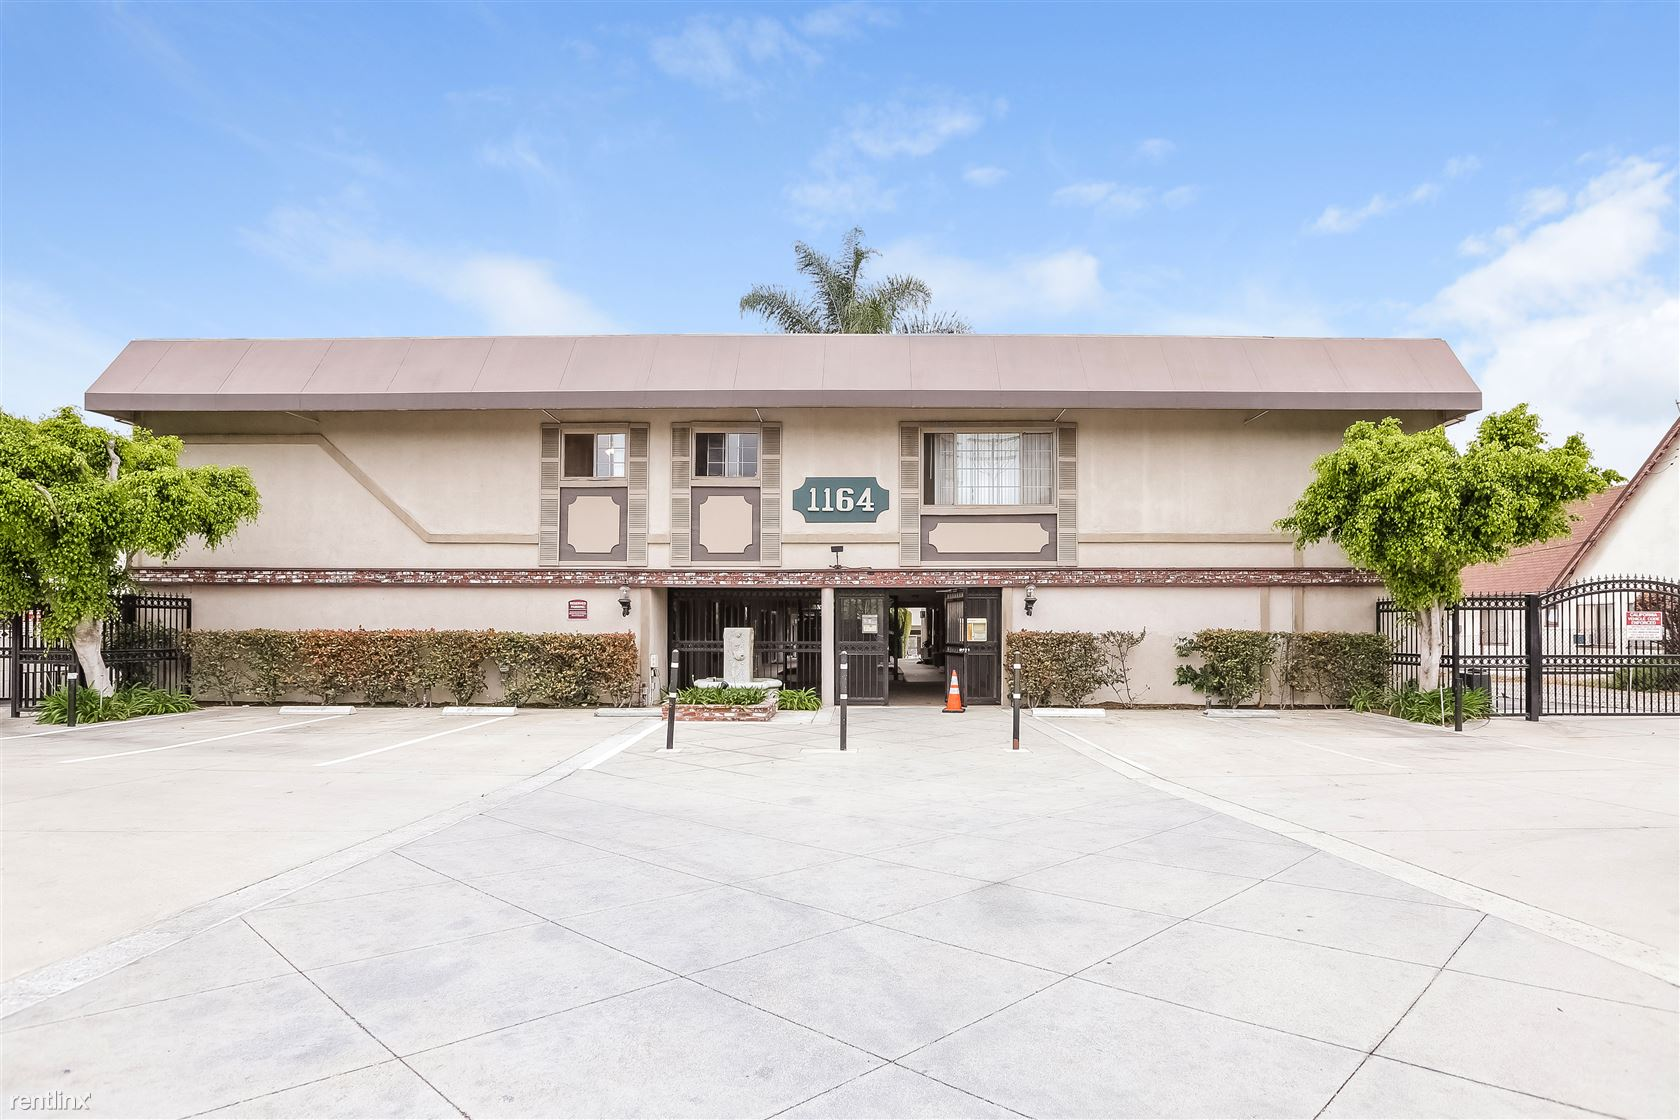 1164 W Duarte Rd - 2095USD / month